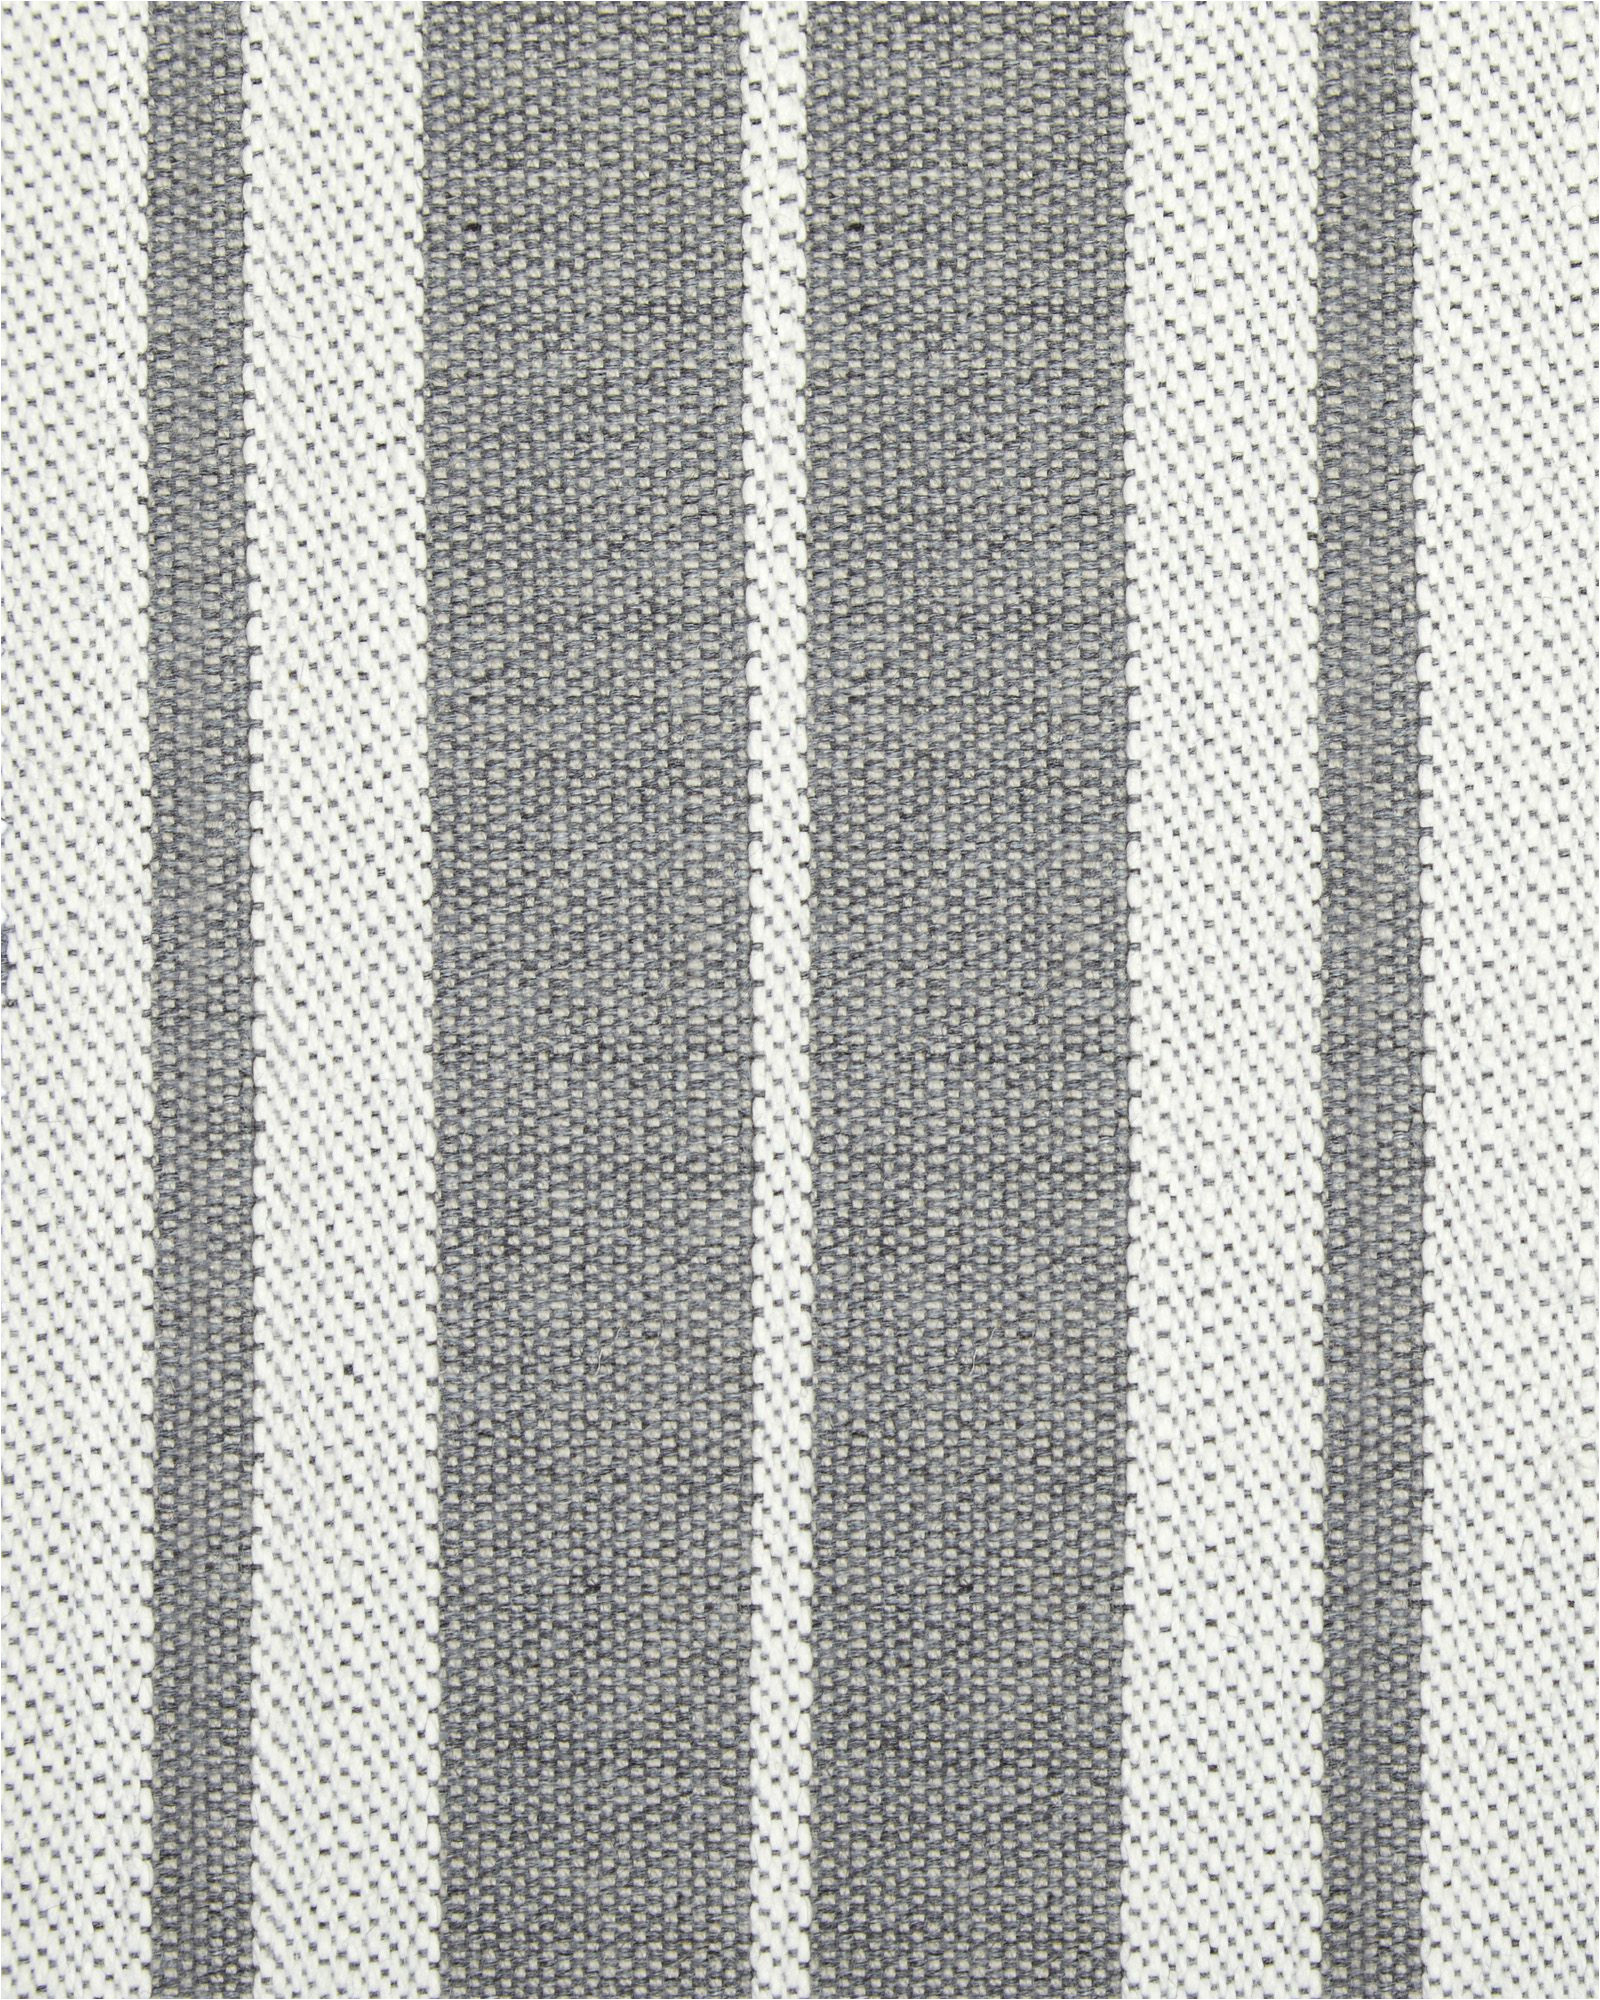 French Ticking Fabric by the Yard Perennialsa Variegated Stripe Fabric